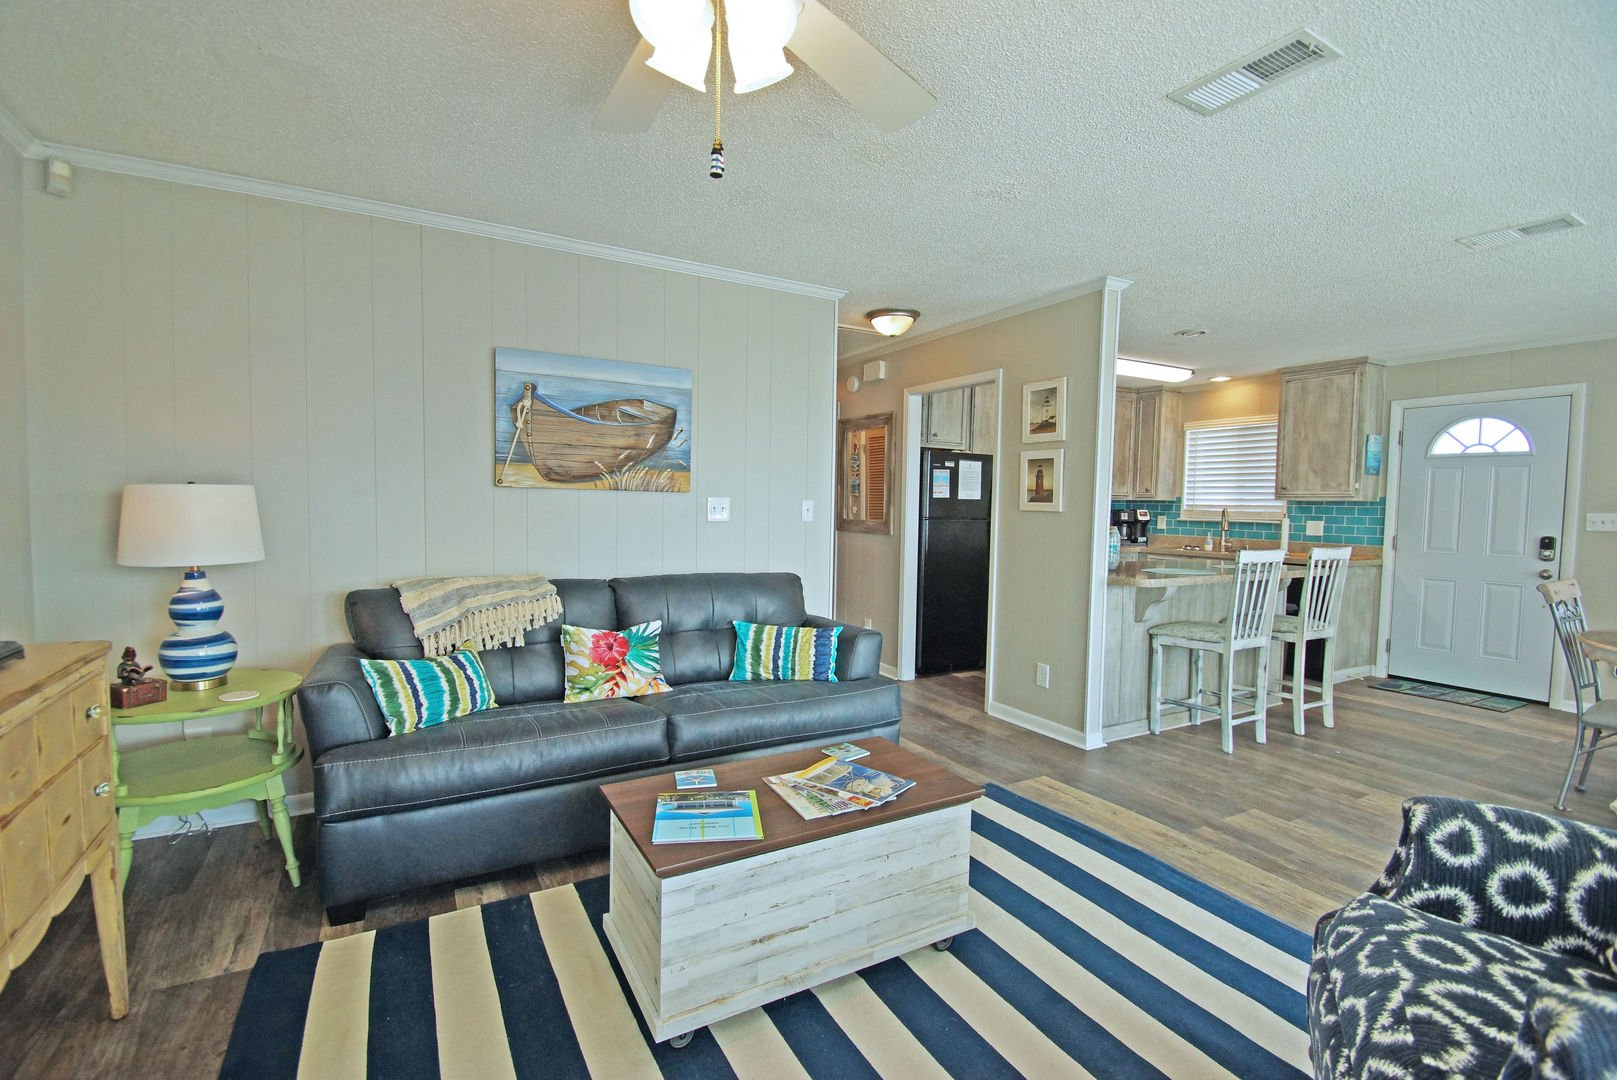 Sofa, Coffee Table, Kitchen Counter, Stools, and Ceiling Fan.